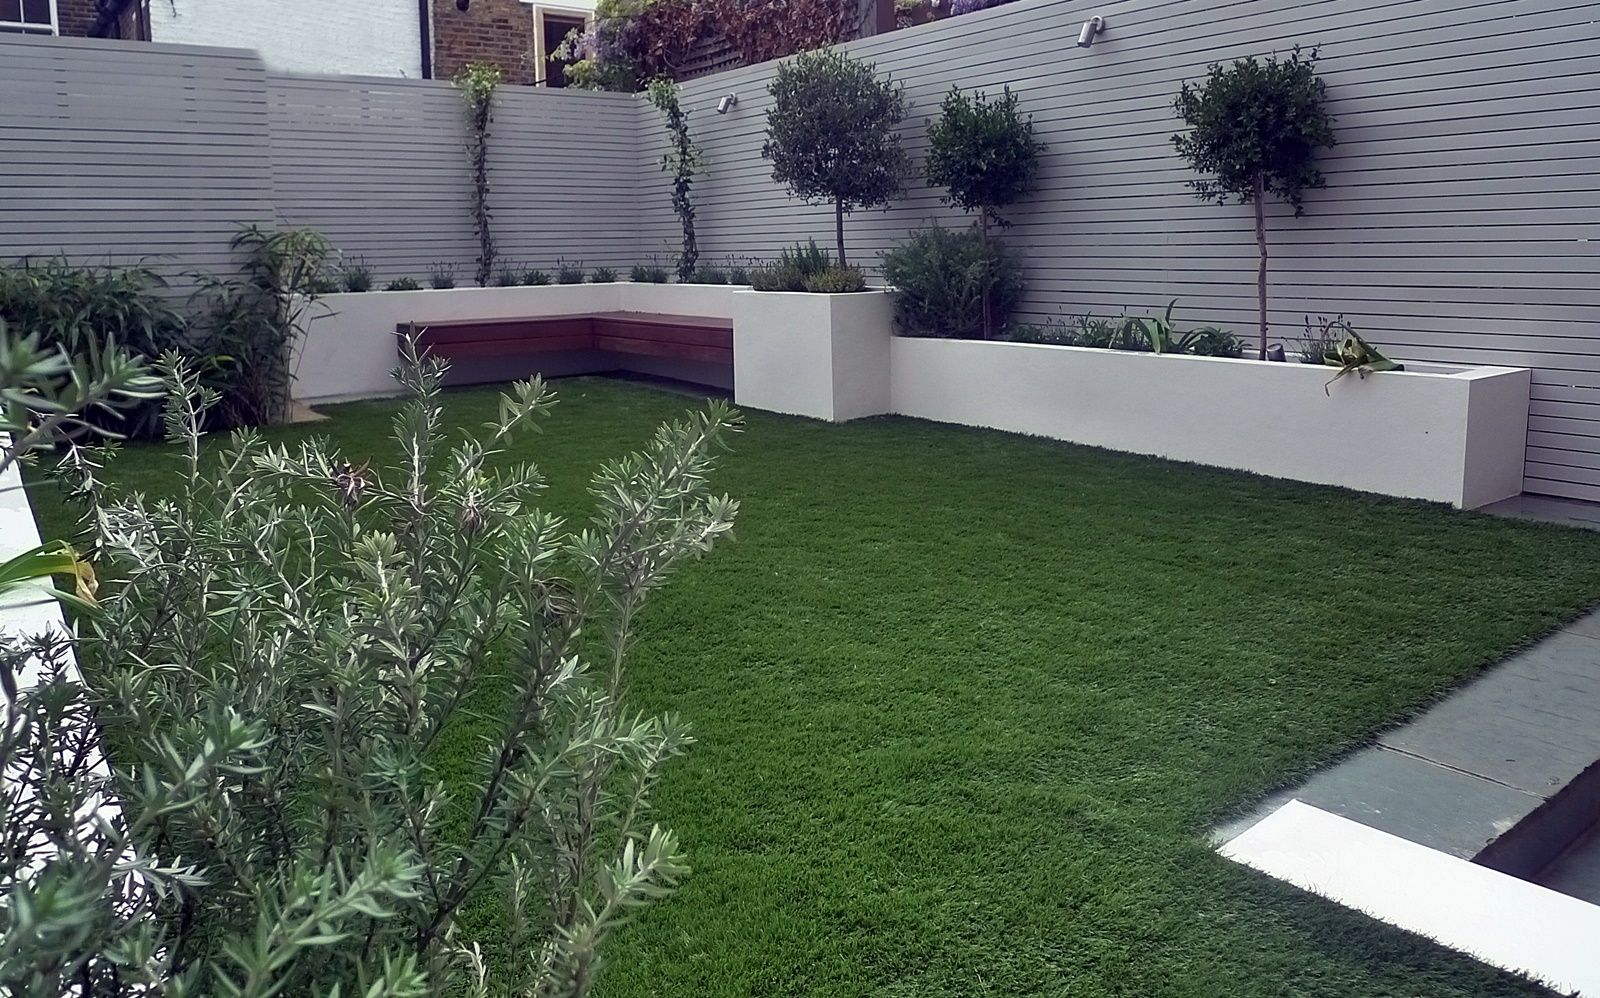 Artificial Grass Garden Designs artificialgrass grass garden patio path paving inspiration Artificial Grass Easi Grass Modern Garden Designers And Design London